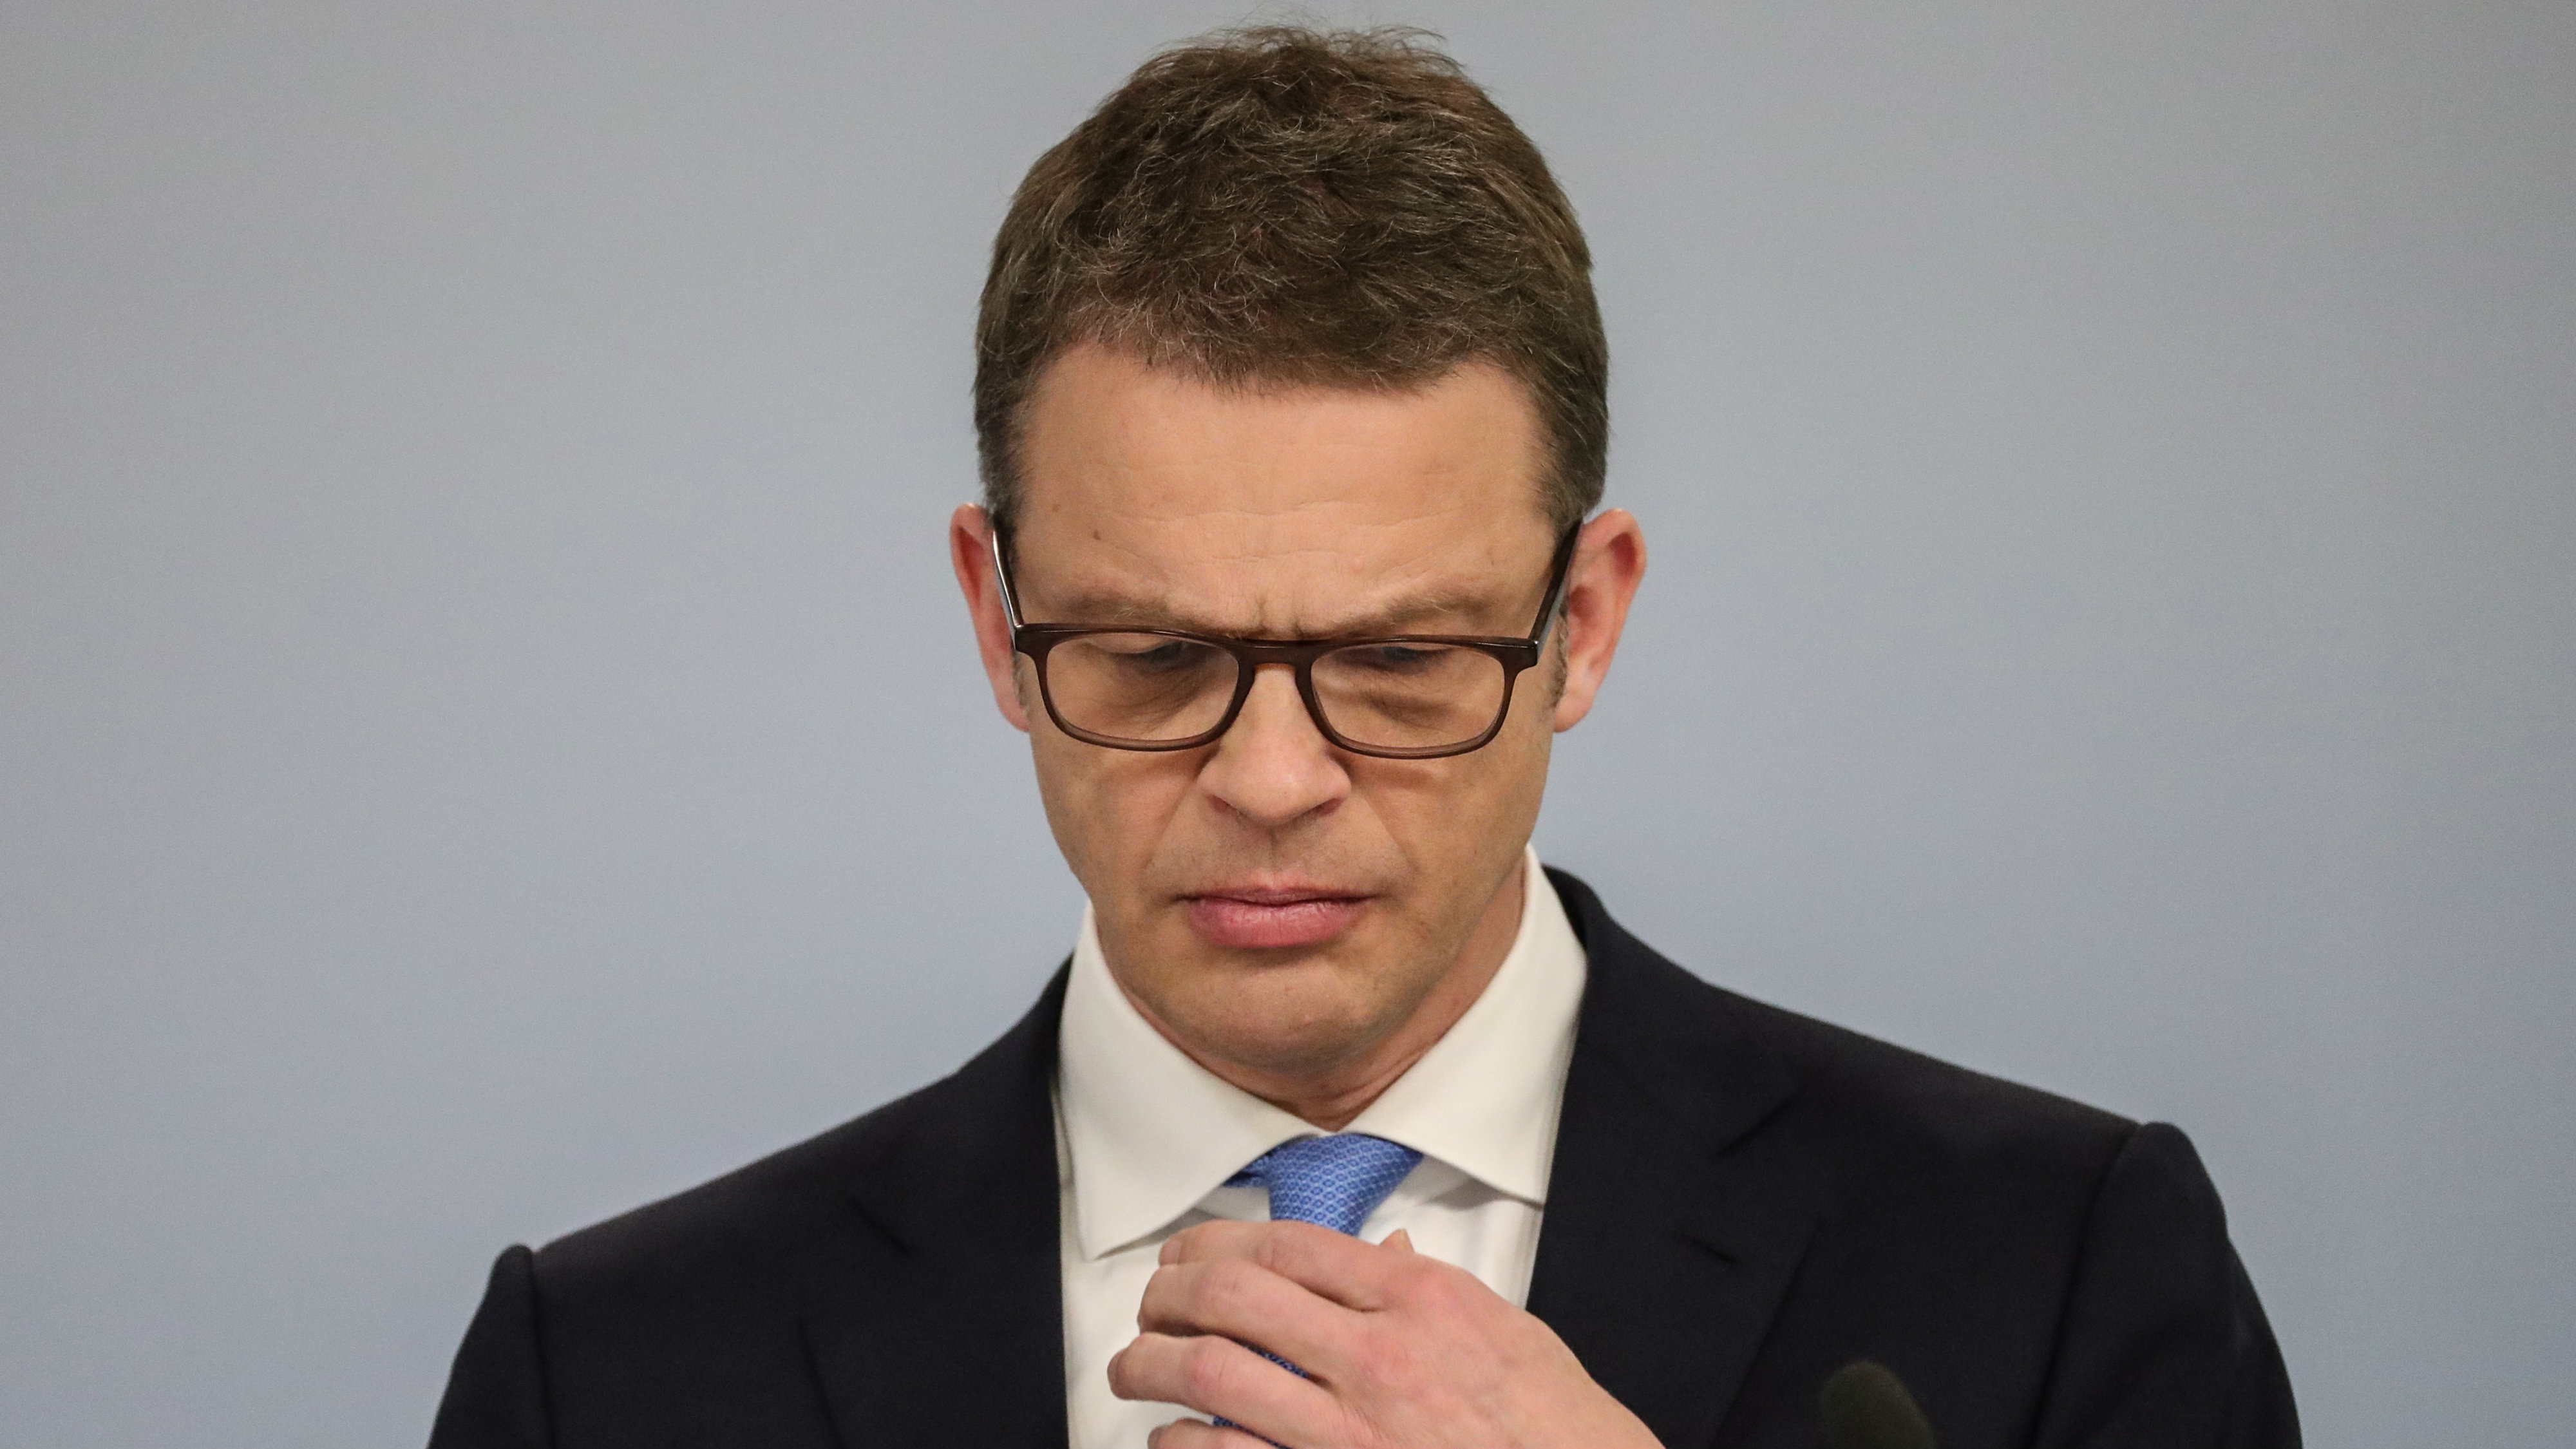 Christian Sewing, Co-President of Deutsche Bank, speaks during the Annual Media Conference of Deutsche Bank in Frankfurt Main, Germany, 02 February 2018.